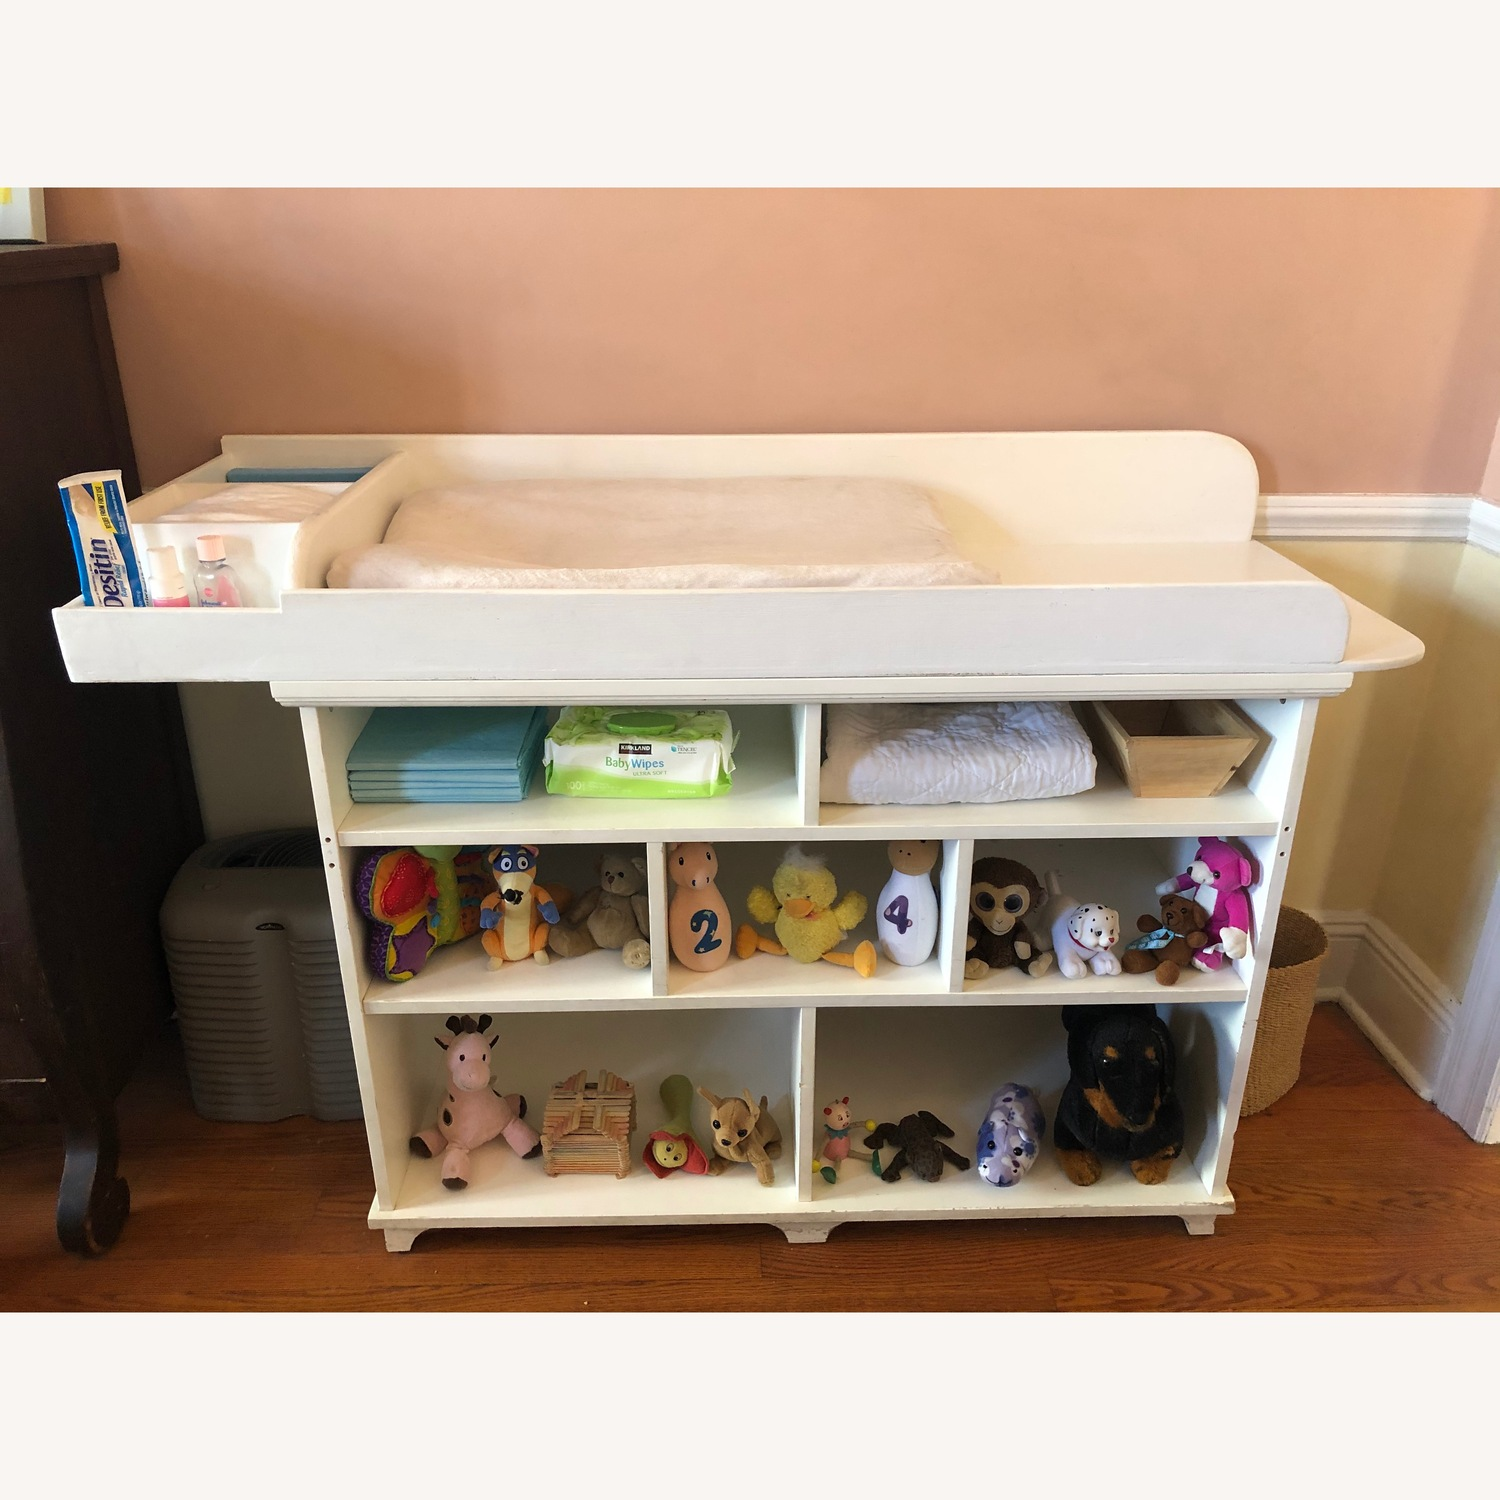 Pottery Barn Extra-wide Changing Table